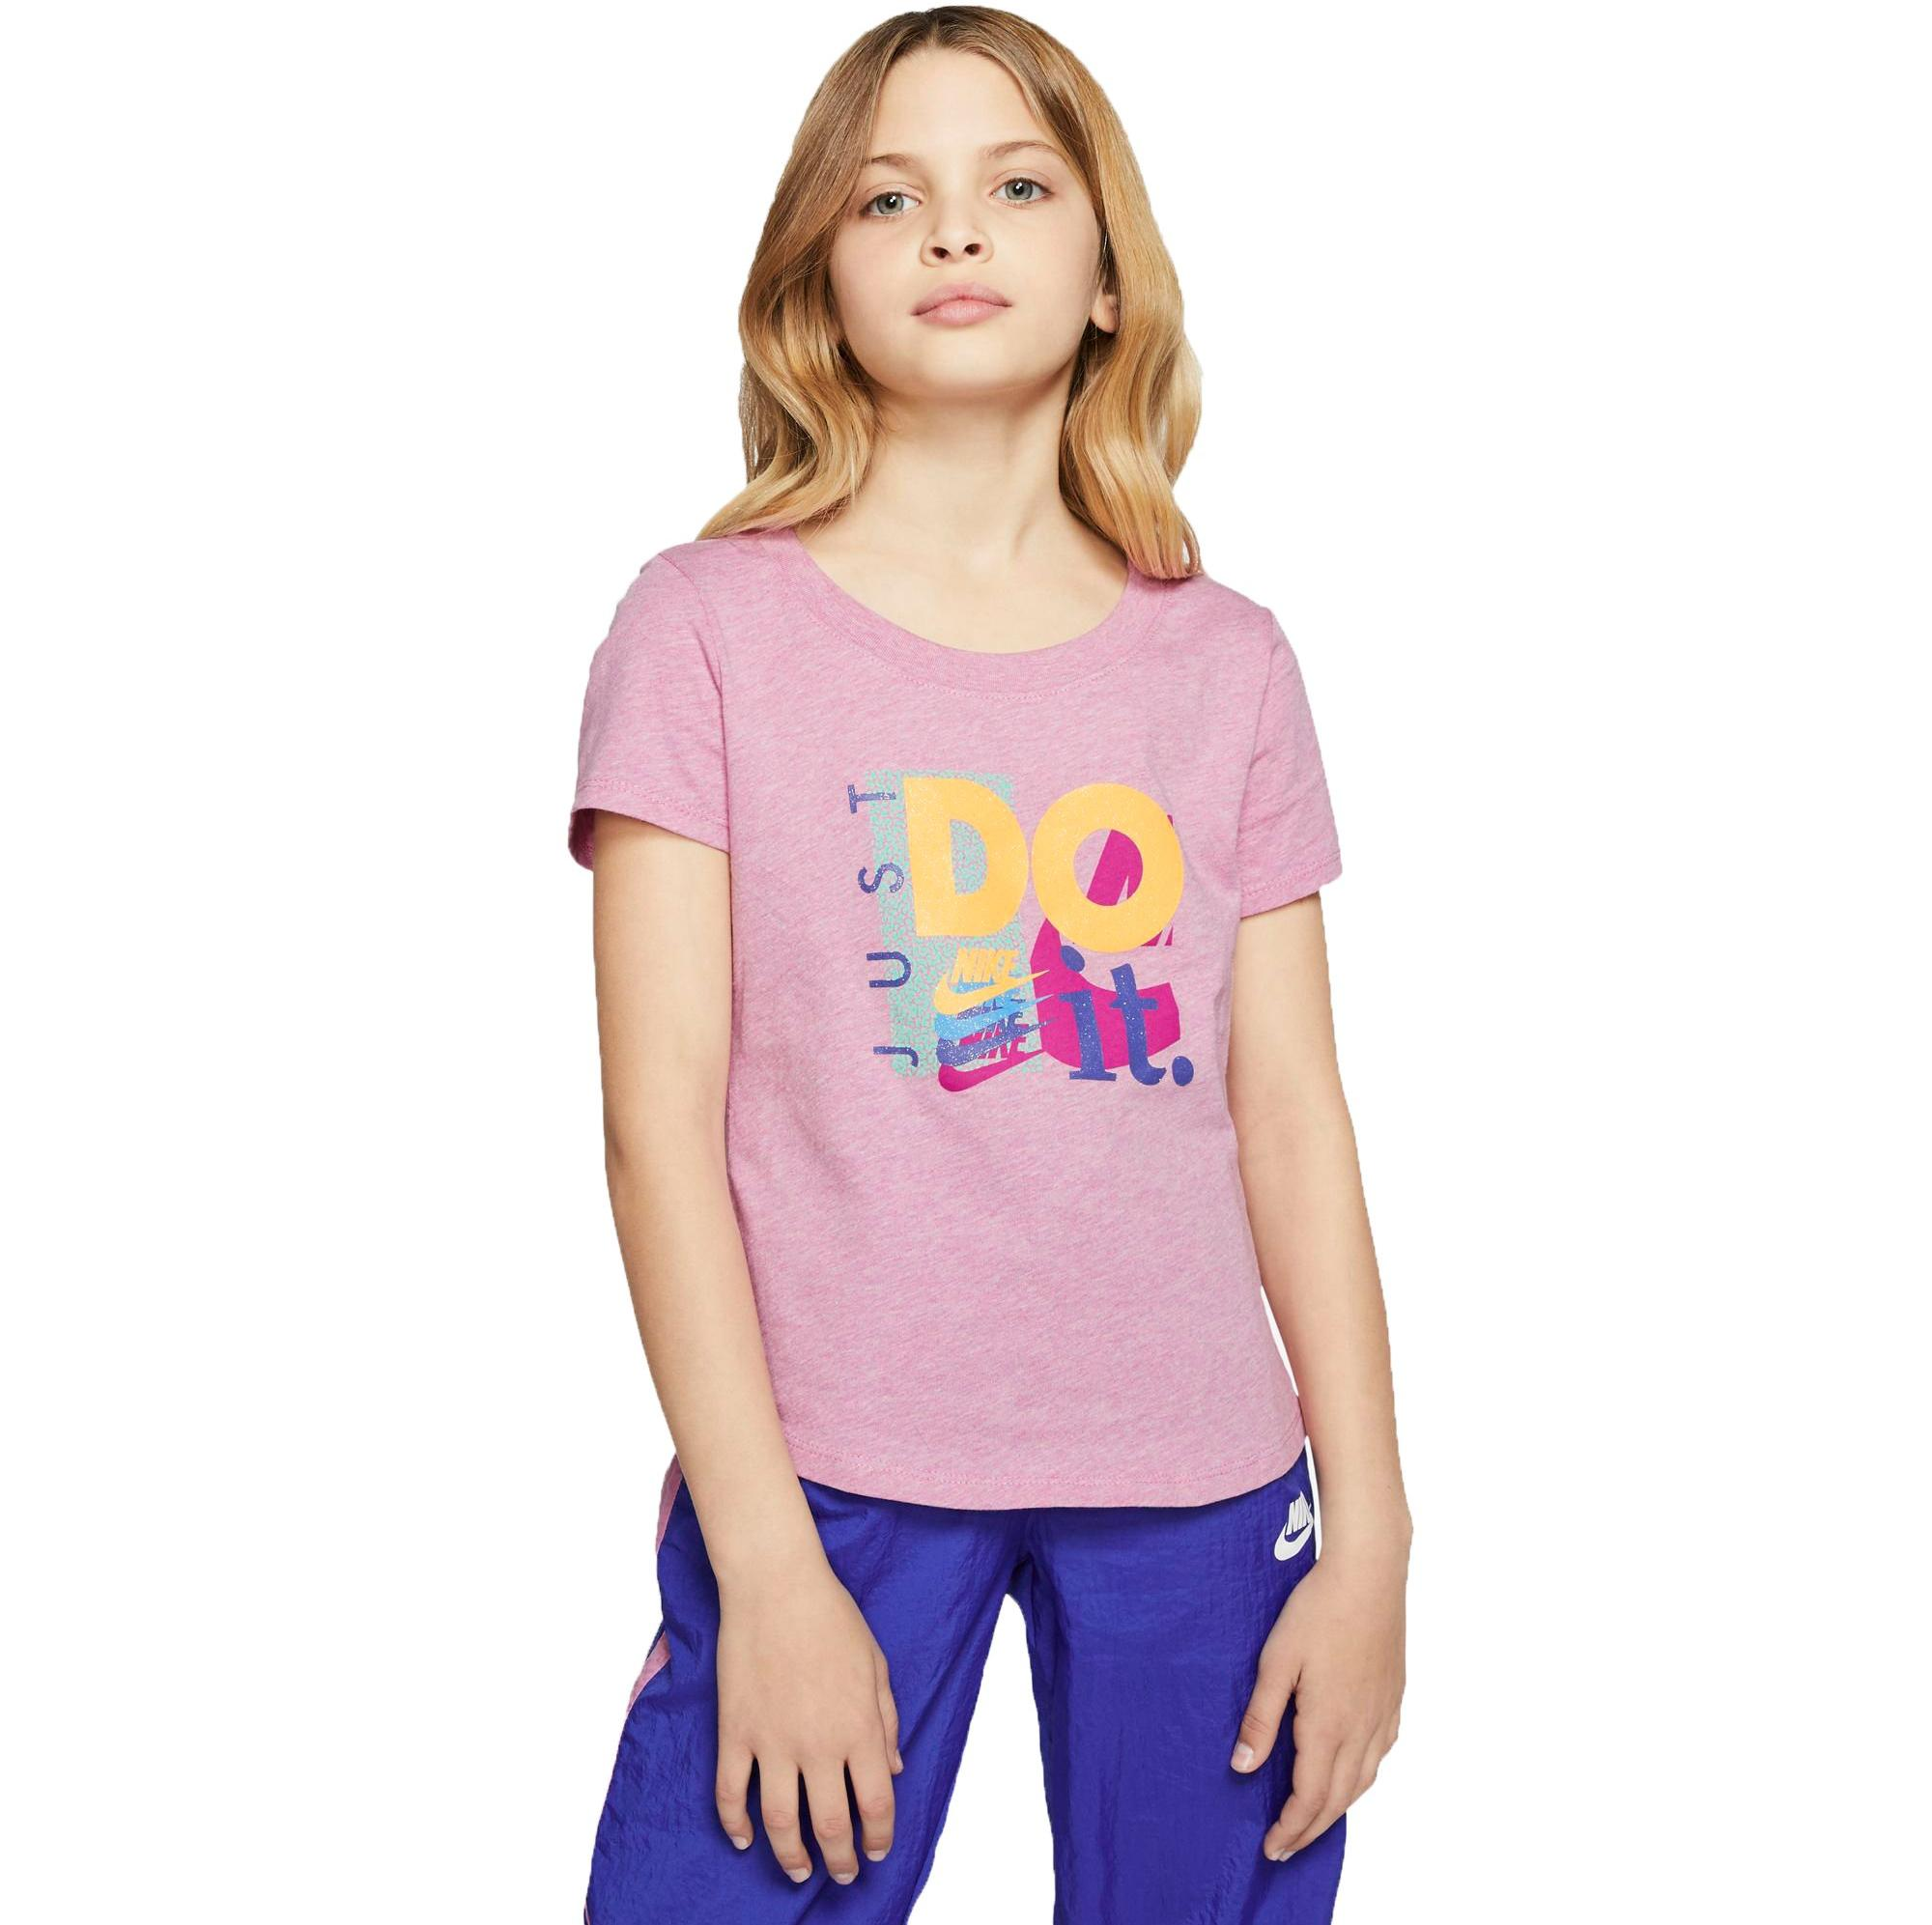 Boys' and Girls' Spring Apparel and Footwear Must-Haves